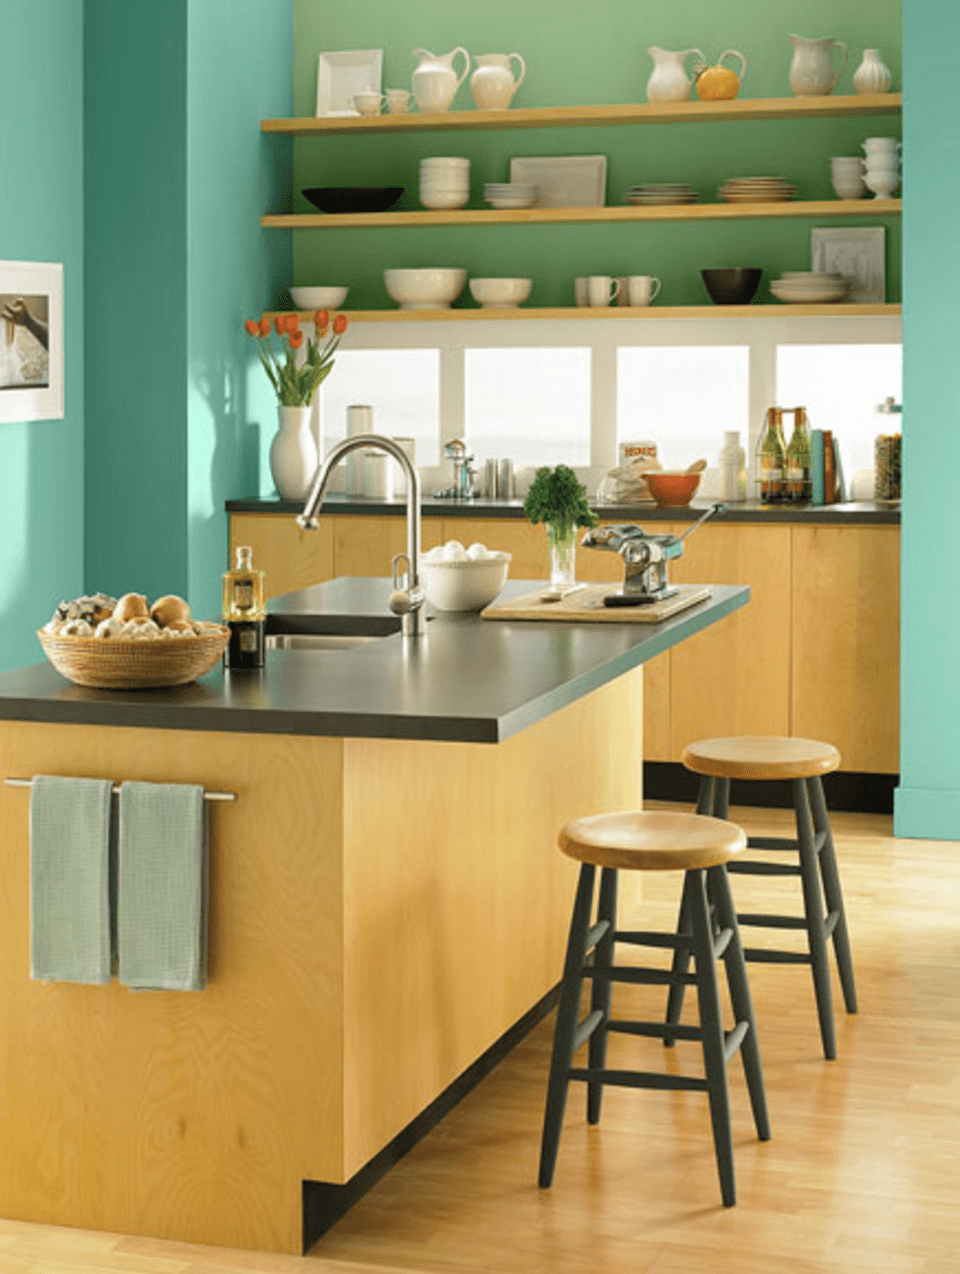 10 Beautiful Kitchens Every Color Lover Needs To See